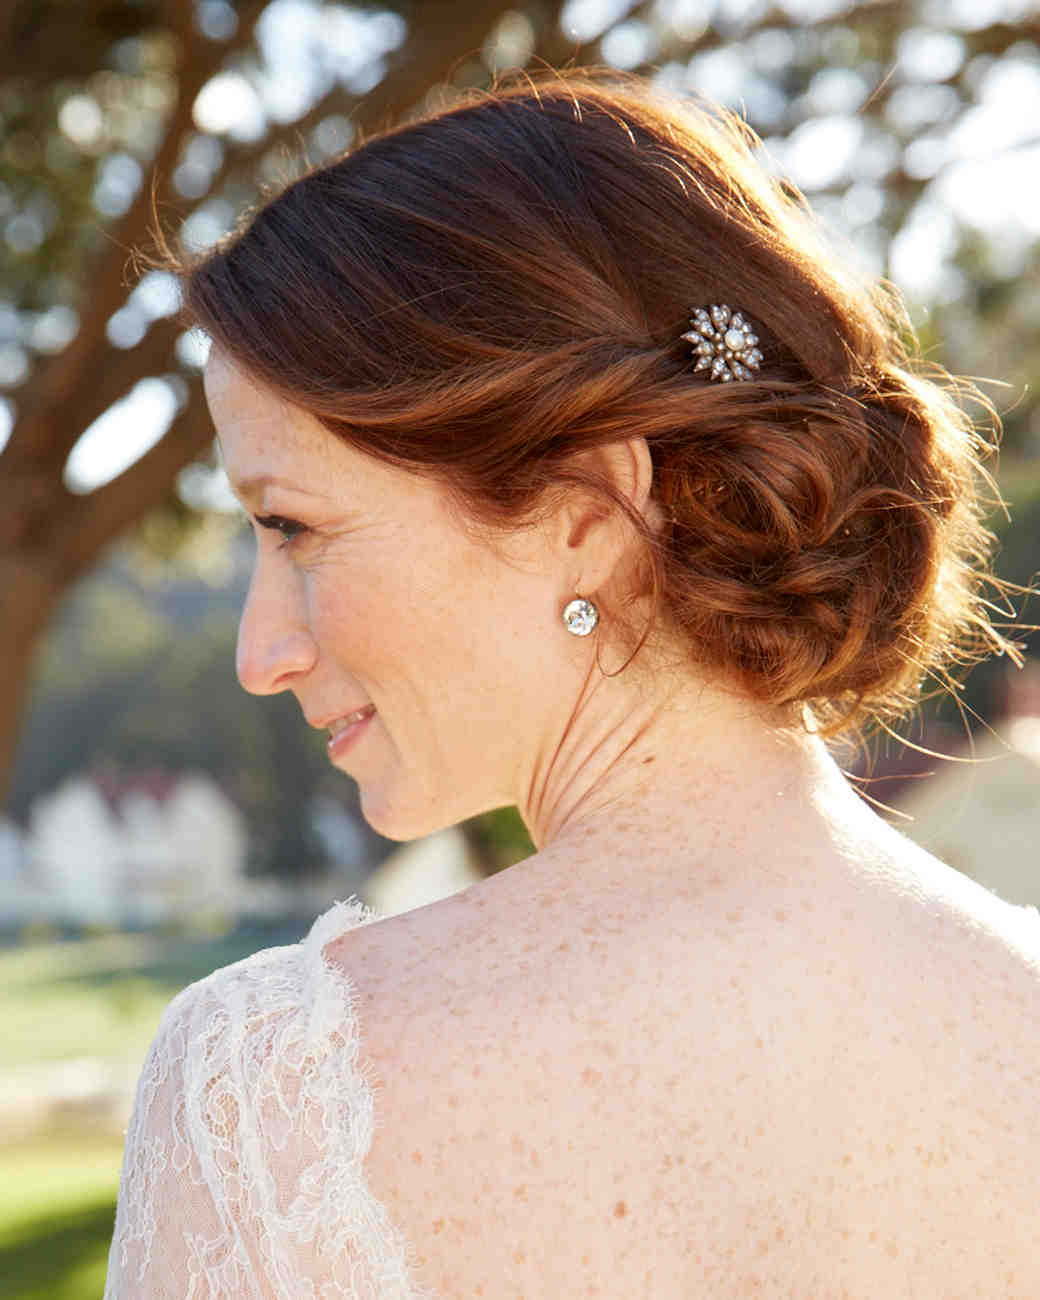 Medium Length Wedding Hairstyles: 16 Gorgeous Medium-Length Wedding Hairstyles